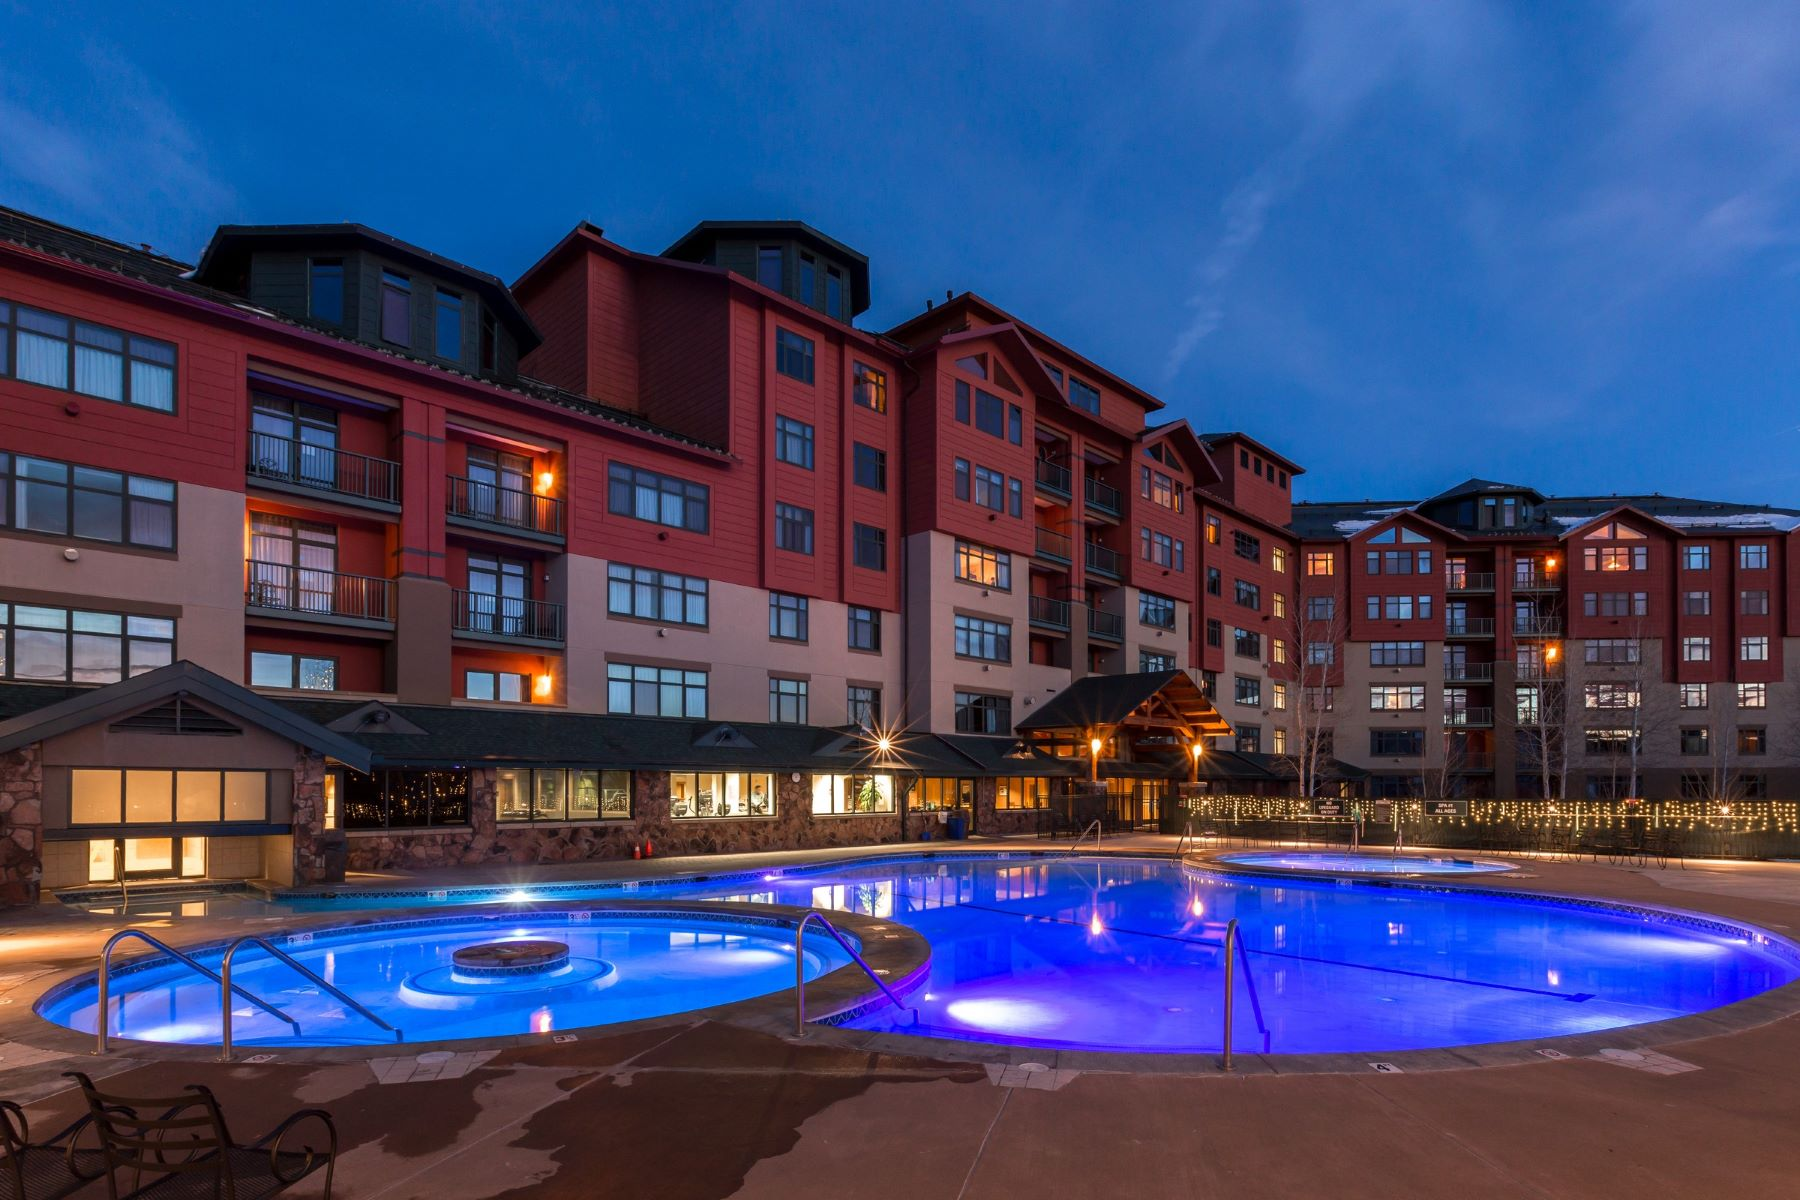 Fractional Ownership for Sale at Penthouse at the Steamboat Grand 1/4 Share Equals 13 Weeks of Use Per Year 2300 Mt. Werner Circle QIIIA & QIIIB Steamboat Springs, Colorado 80487 United States